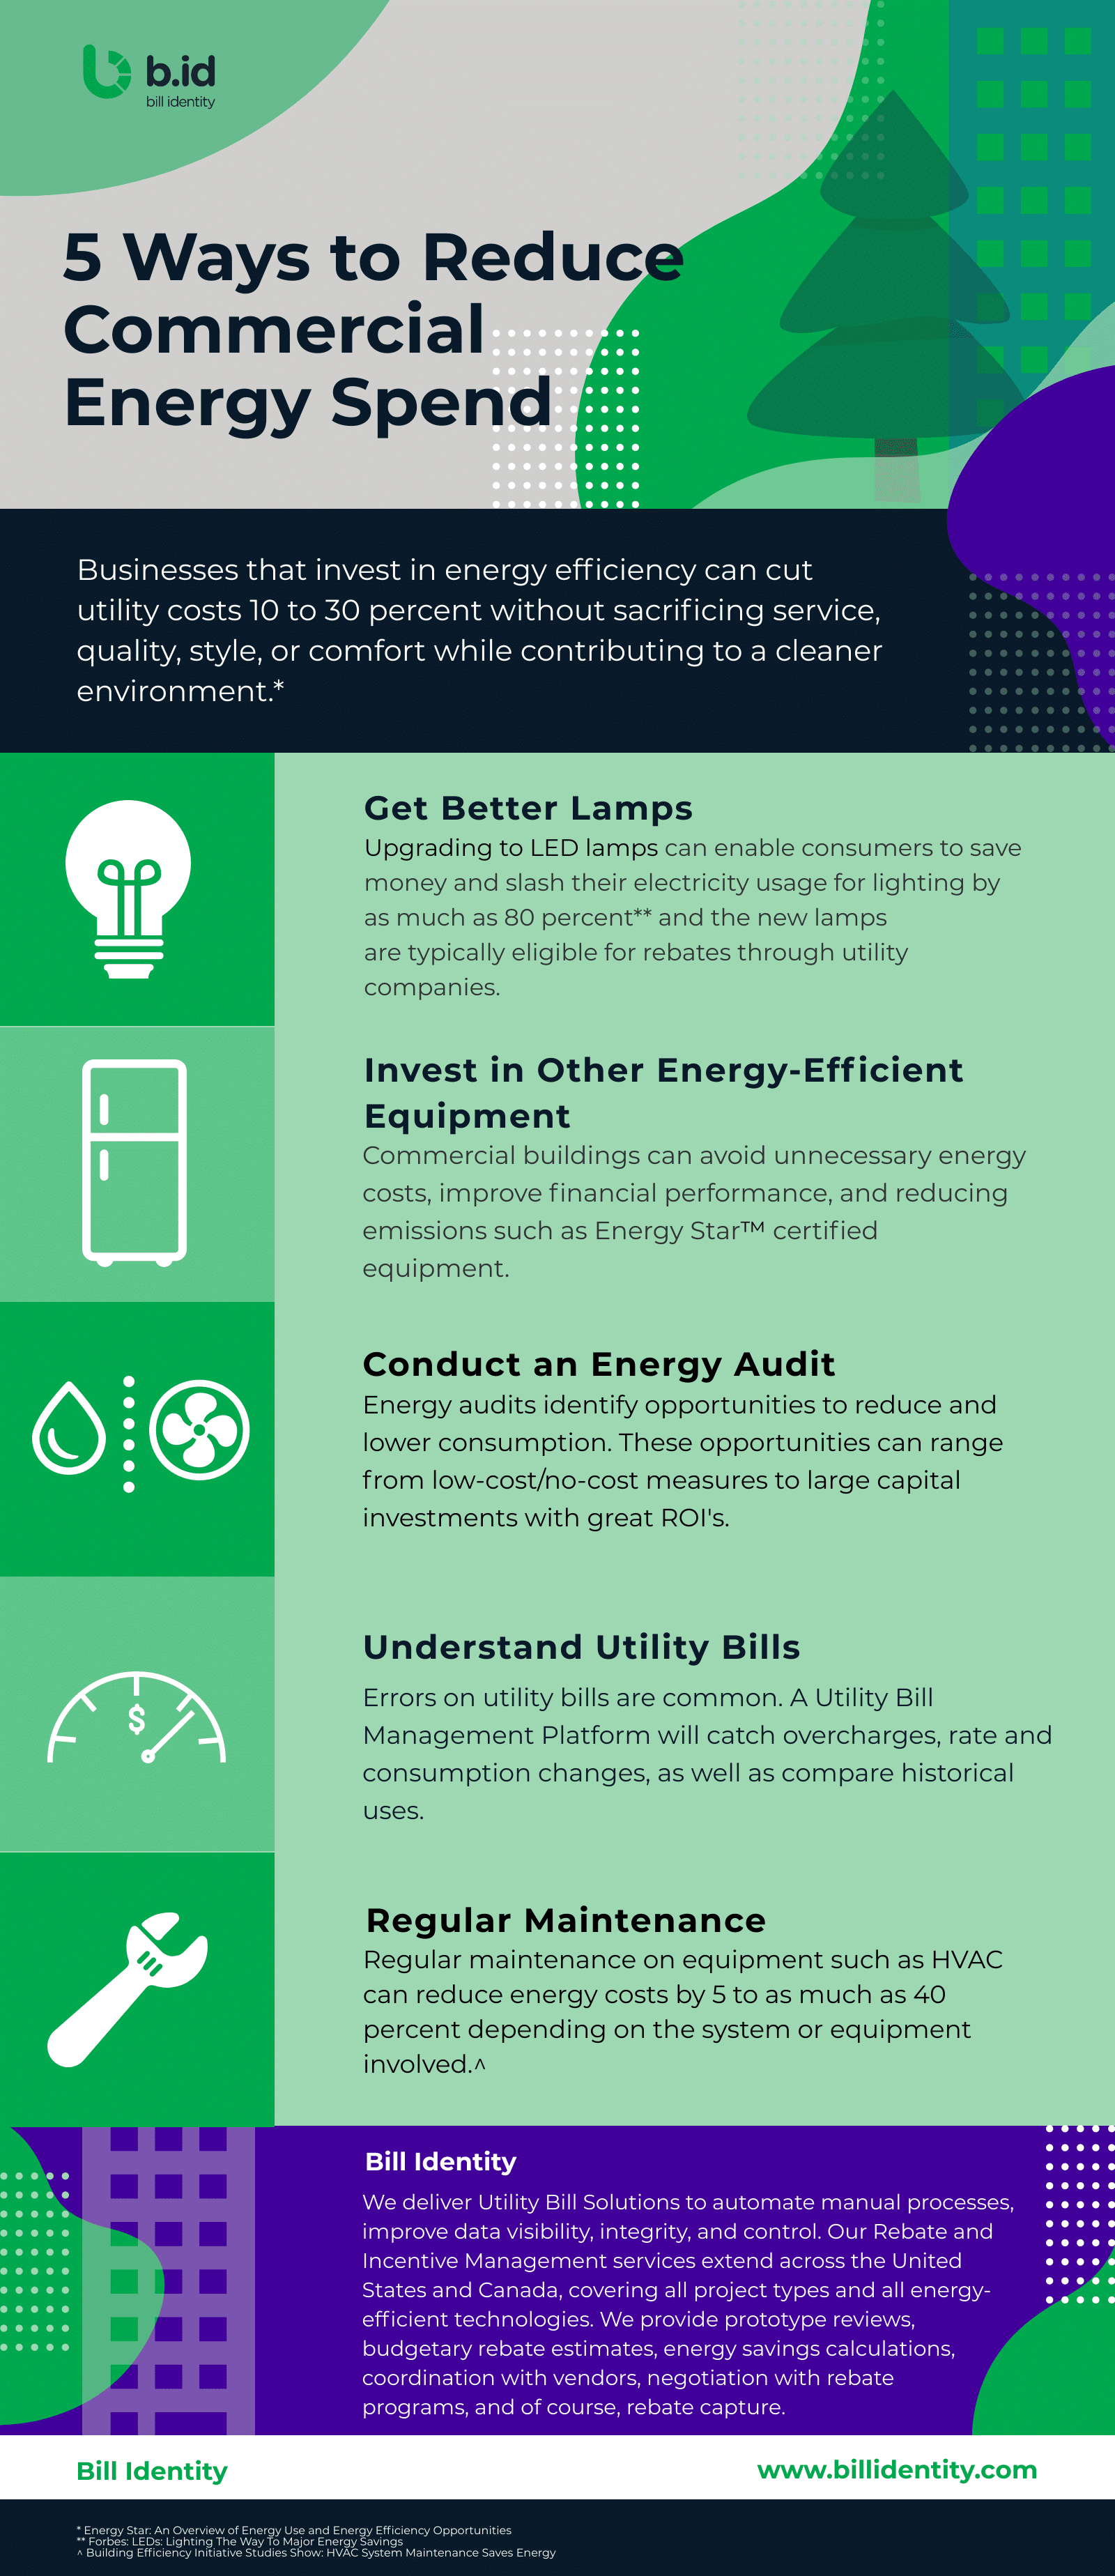 reduce commercial energy spend infographic by bid